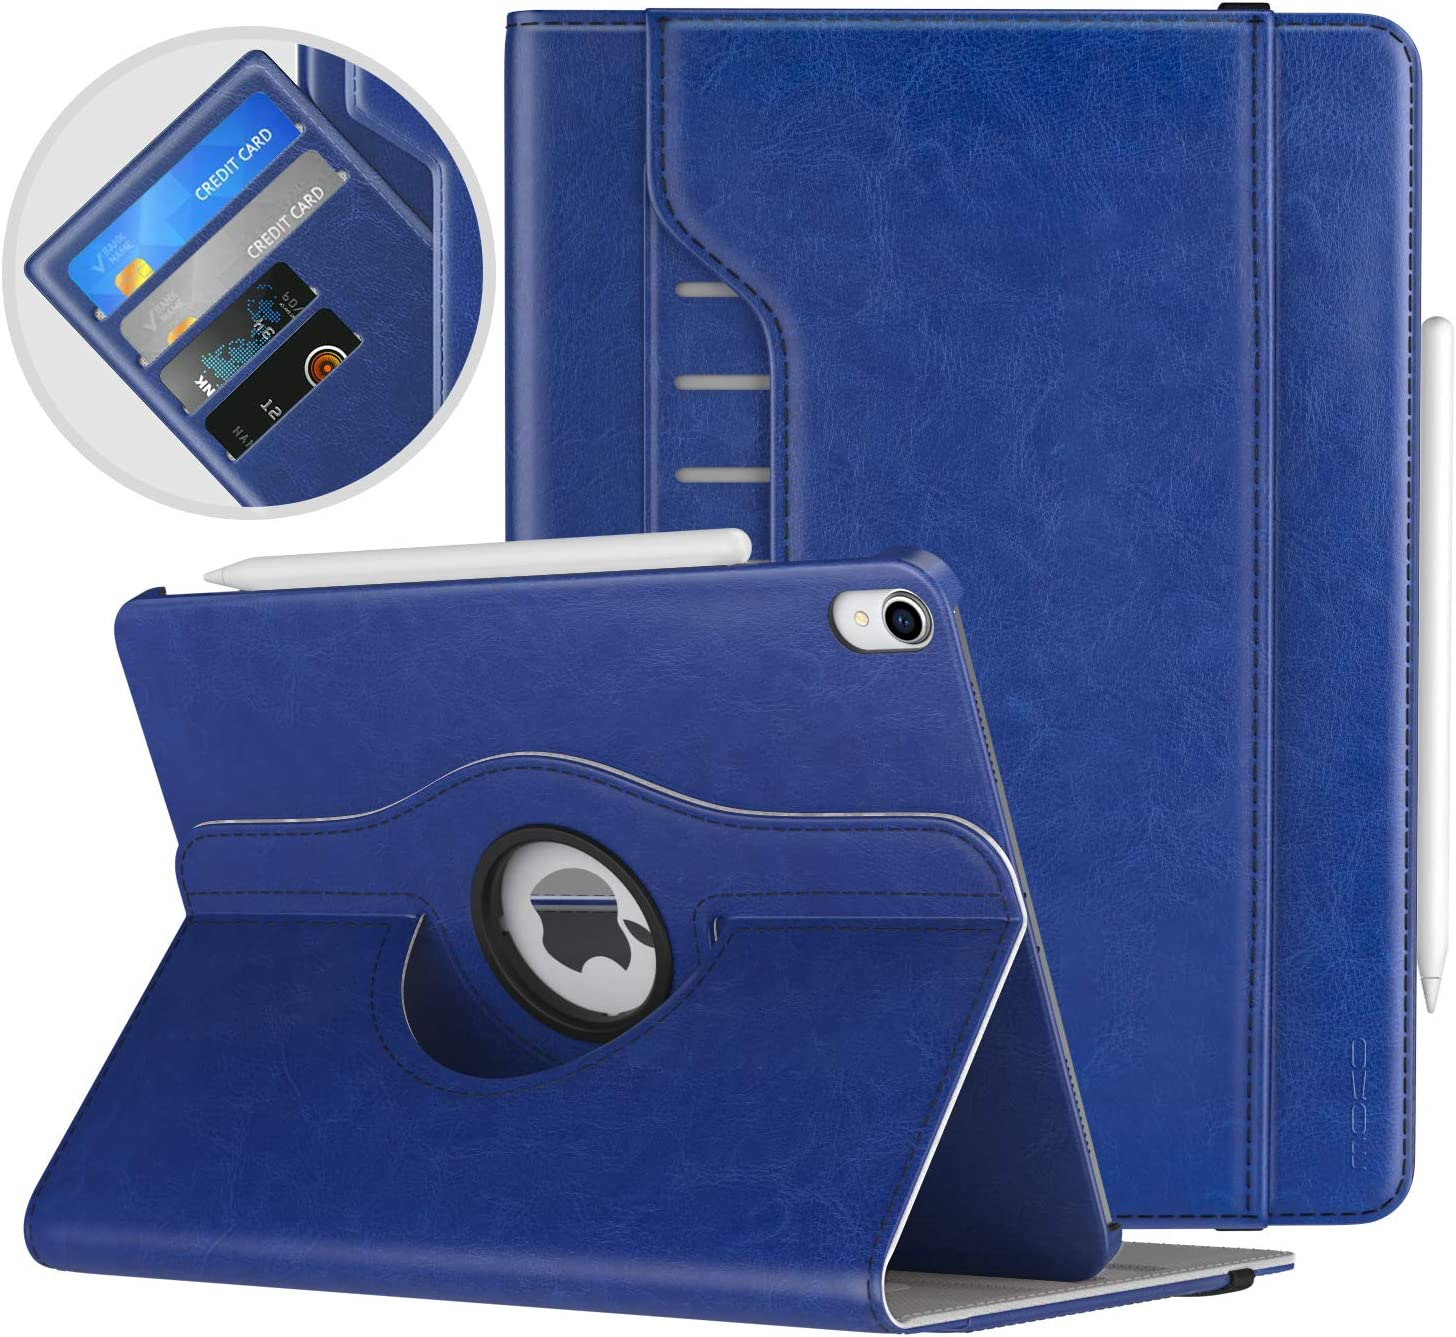 """MoKo Case Fit iPad Pro 11"""" 2018 - Support Apple Pencil Charging - 360 Degree Rotating Leather Cover Slim Folio Multi-Angle Viewing Stand Case, Auto Wake/Sleep Fit iPad Pro 11 2018 Case - Indigo"""